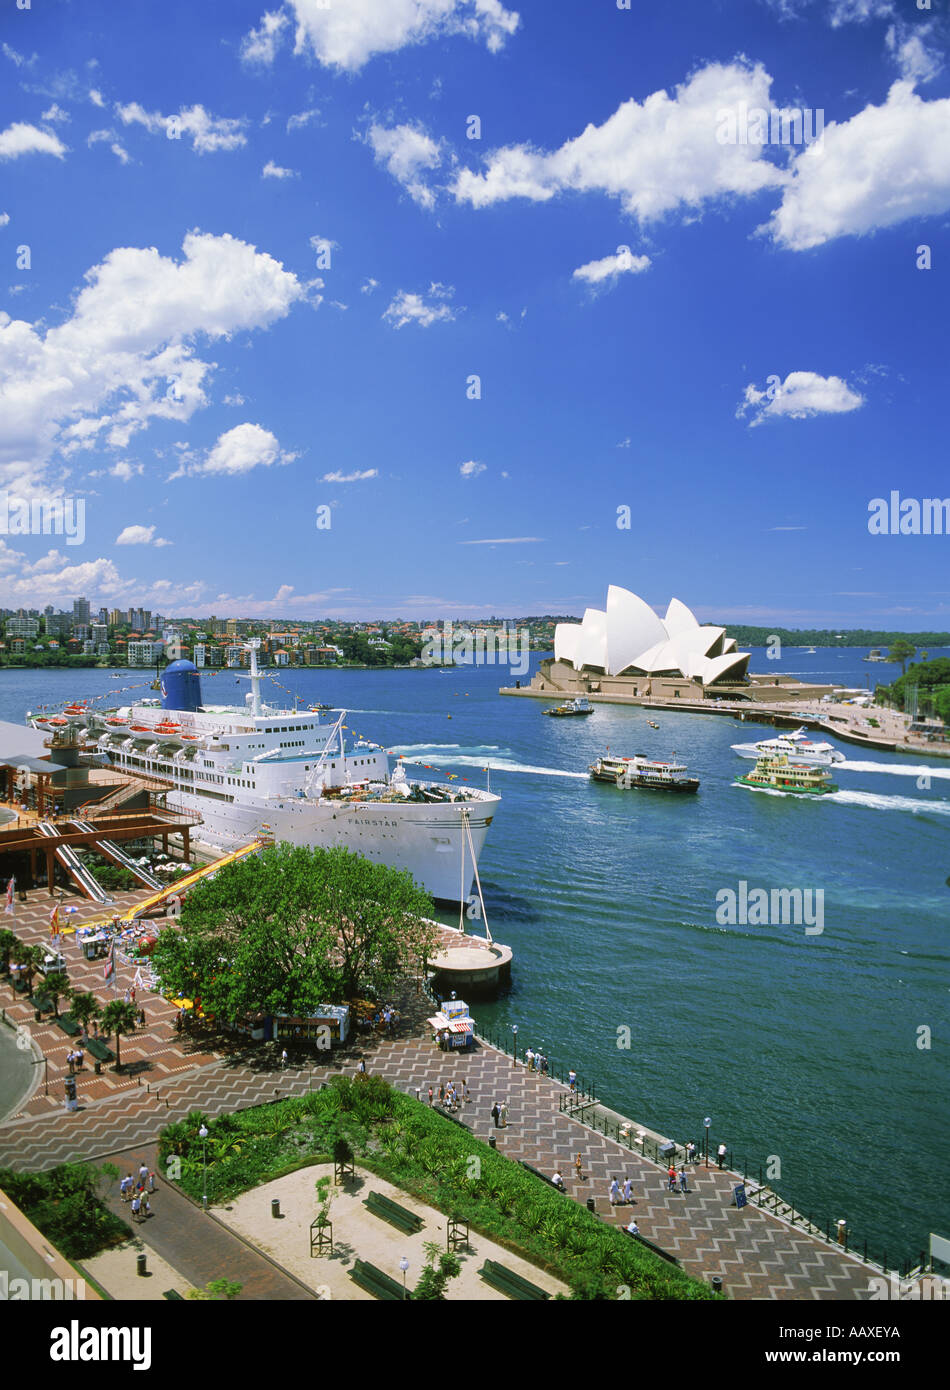 Passenger ships and ferryboats at the Sydney Harbor Quay with Opera House - Stock Image